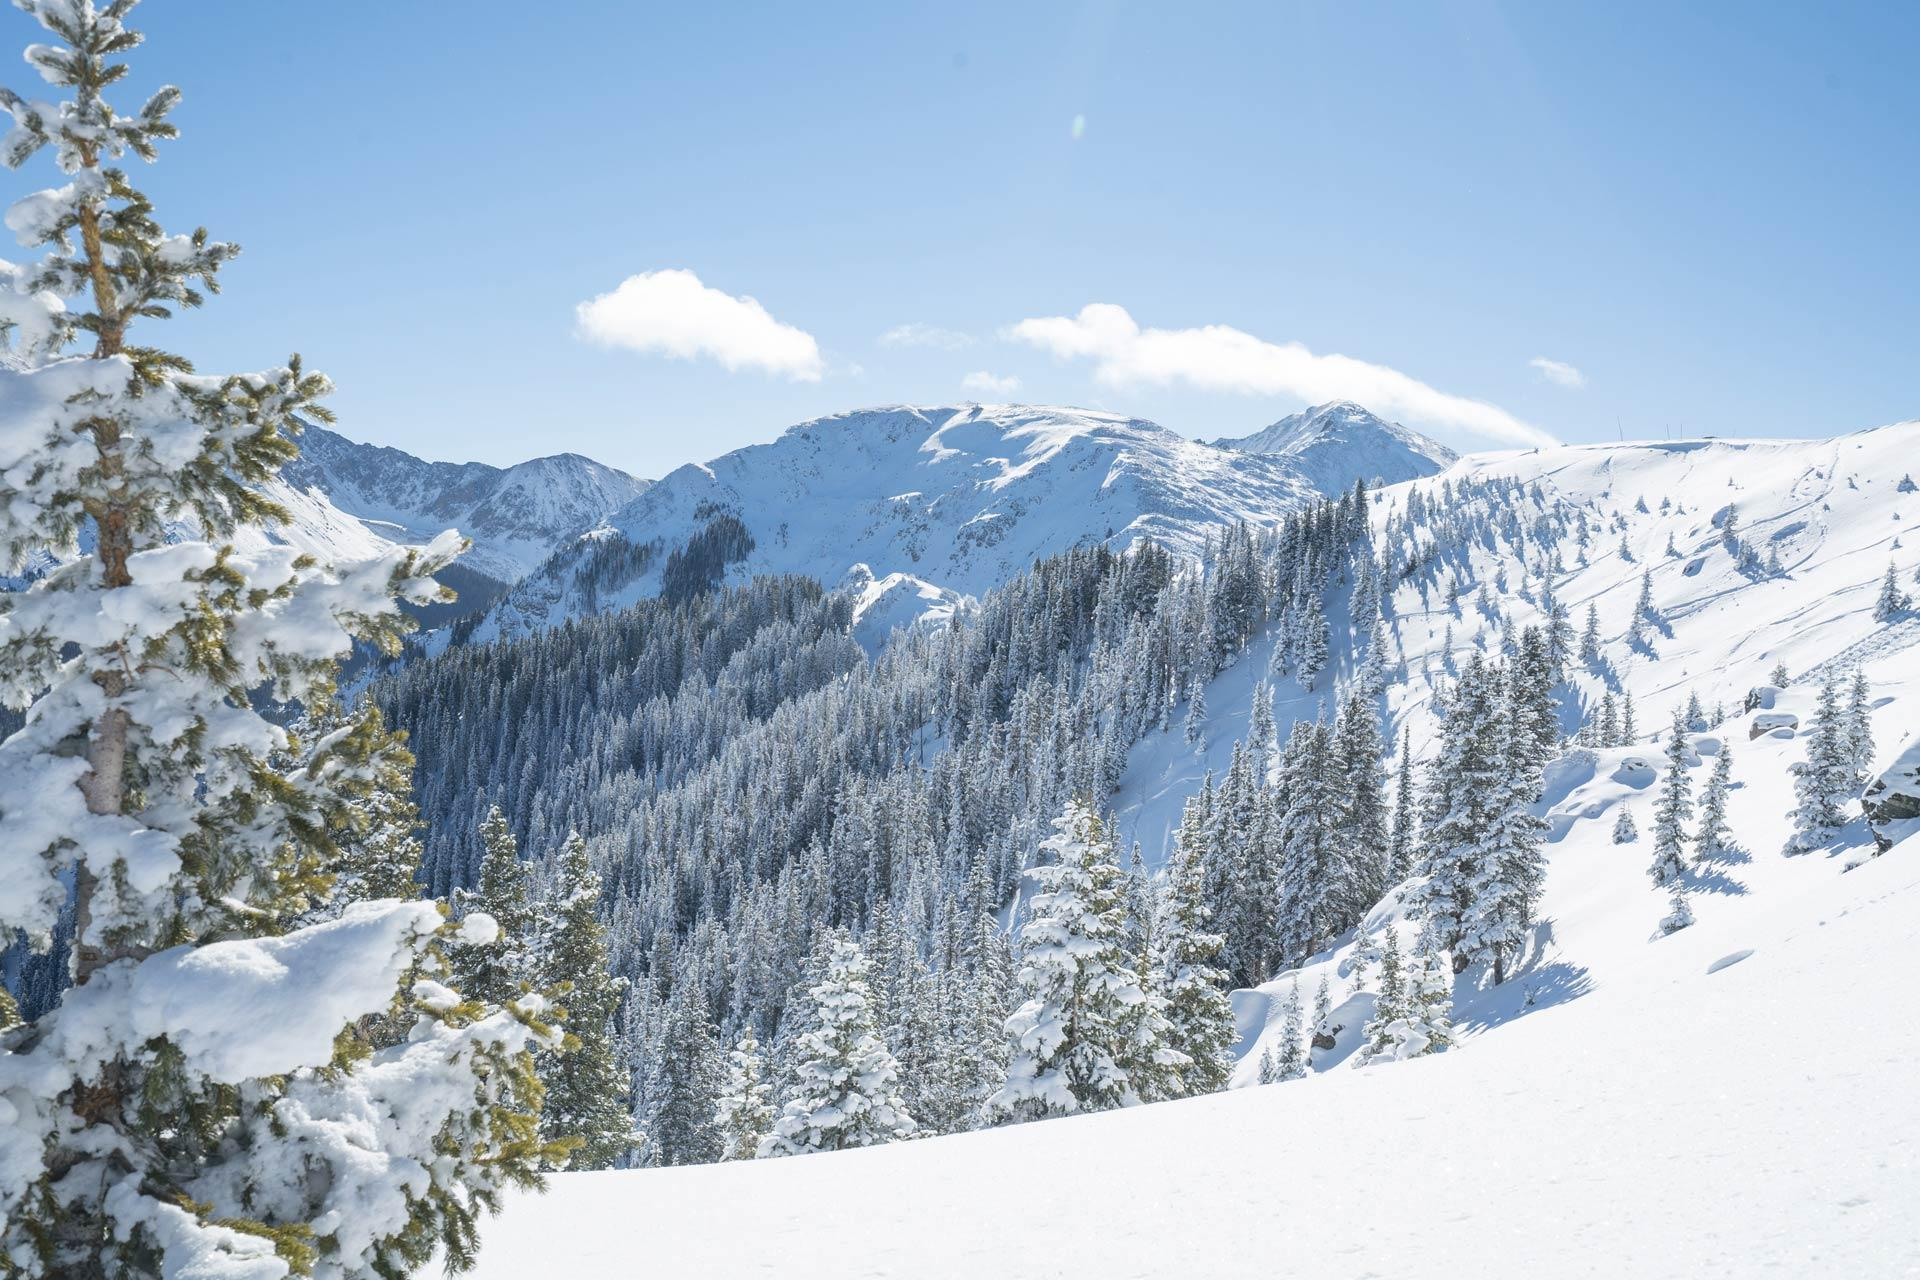 Conditions at Taos Ski Valley